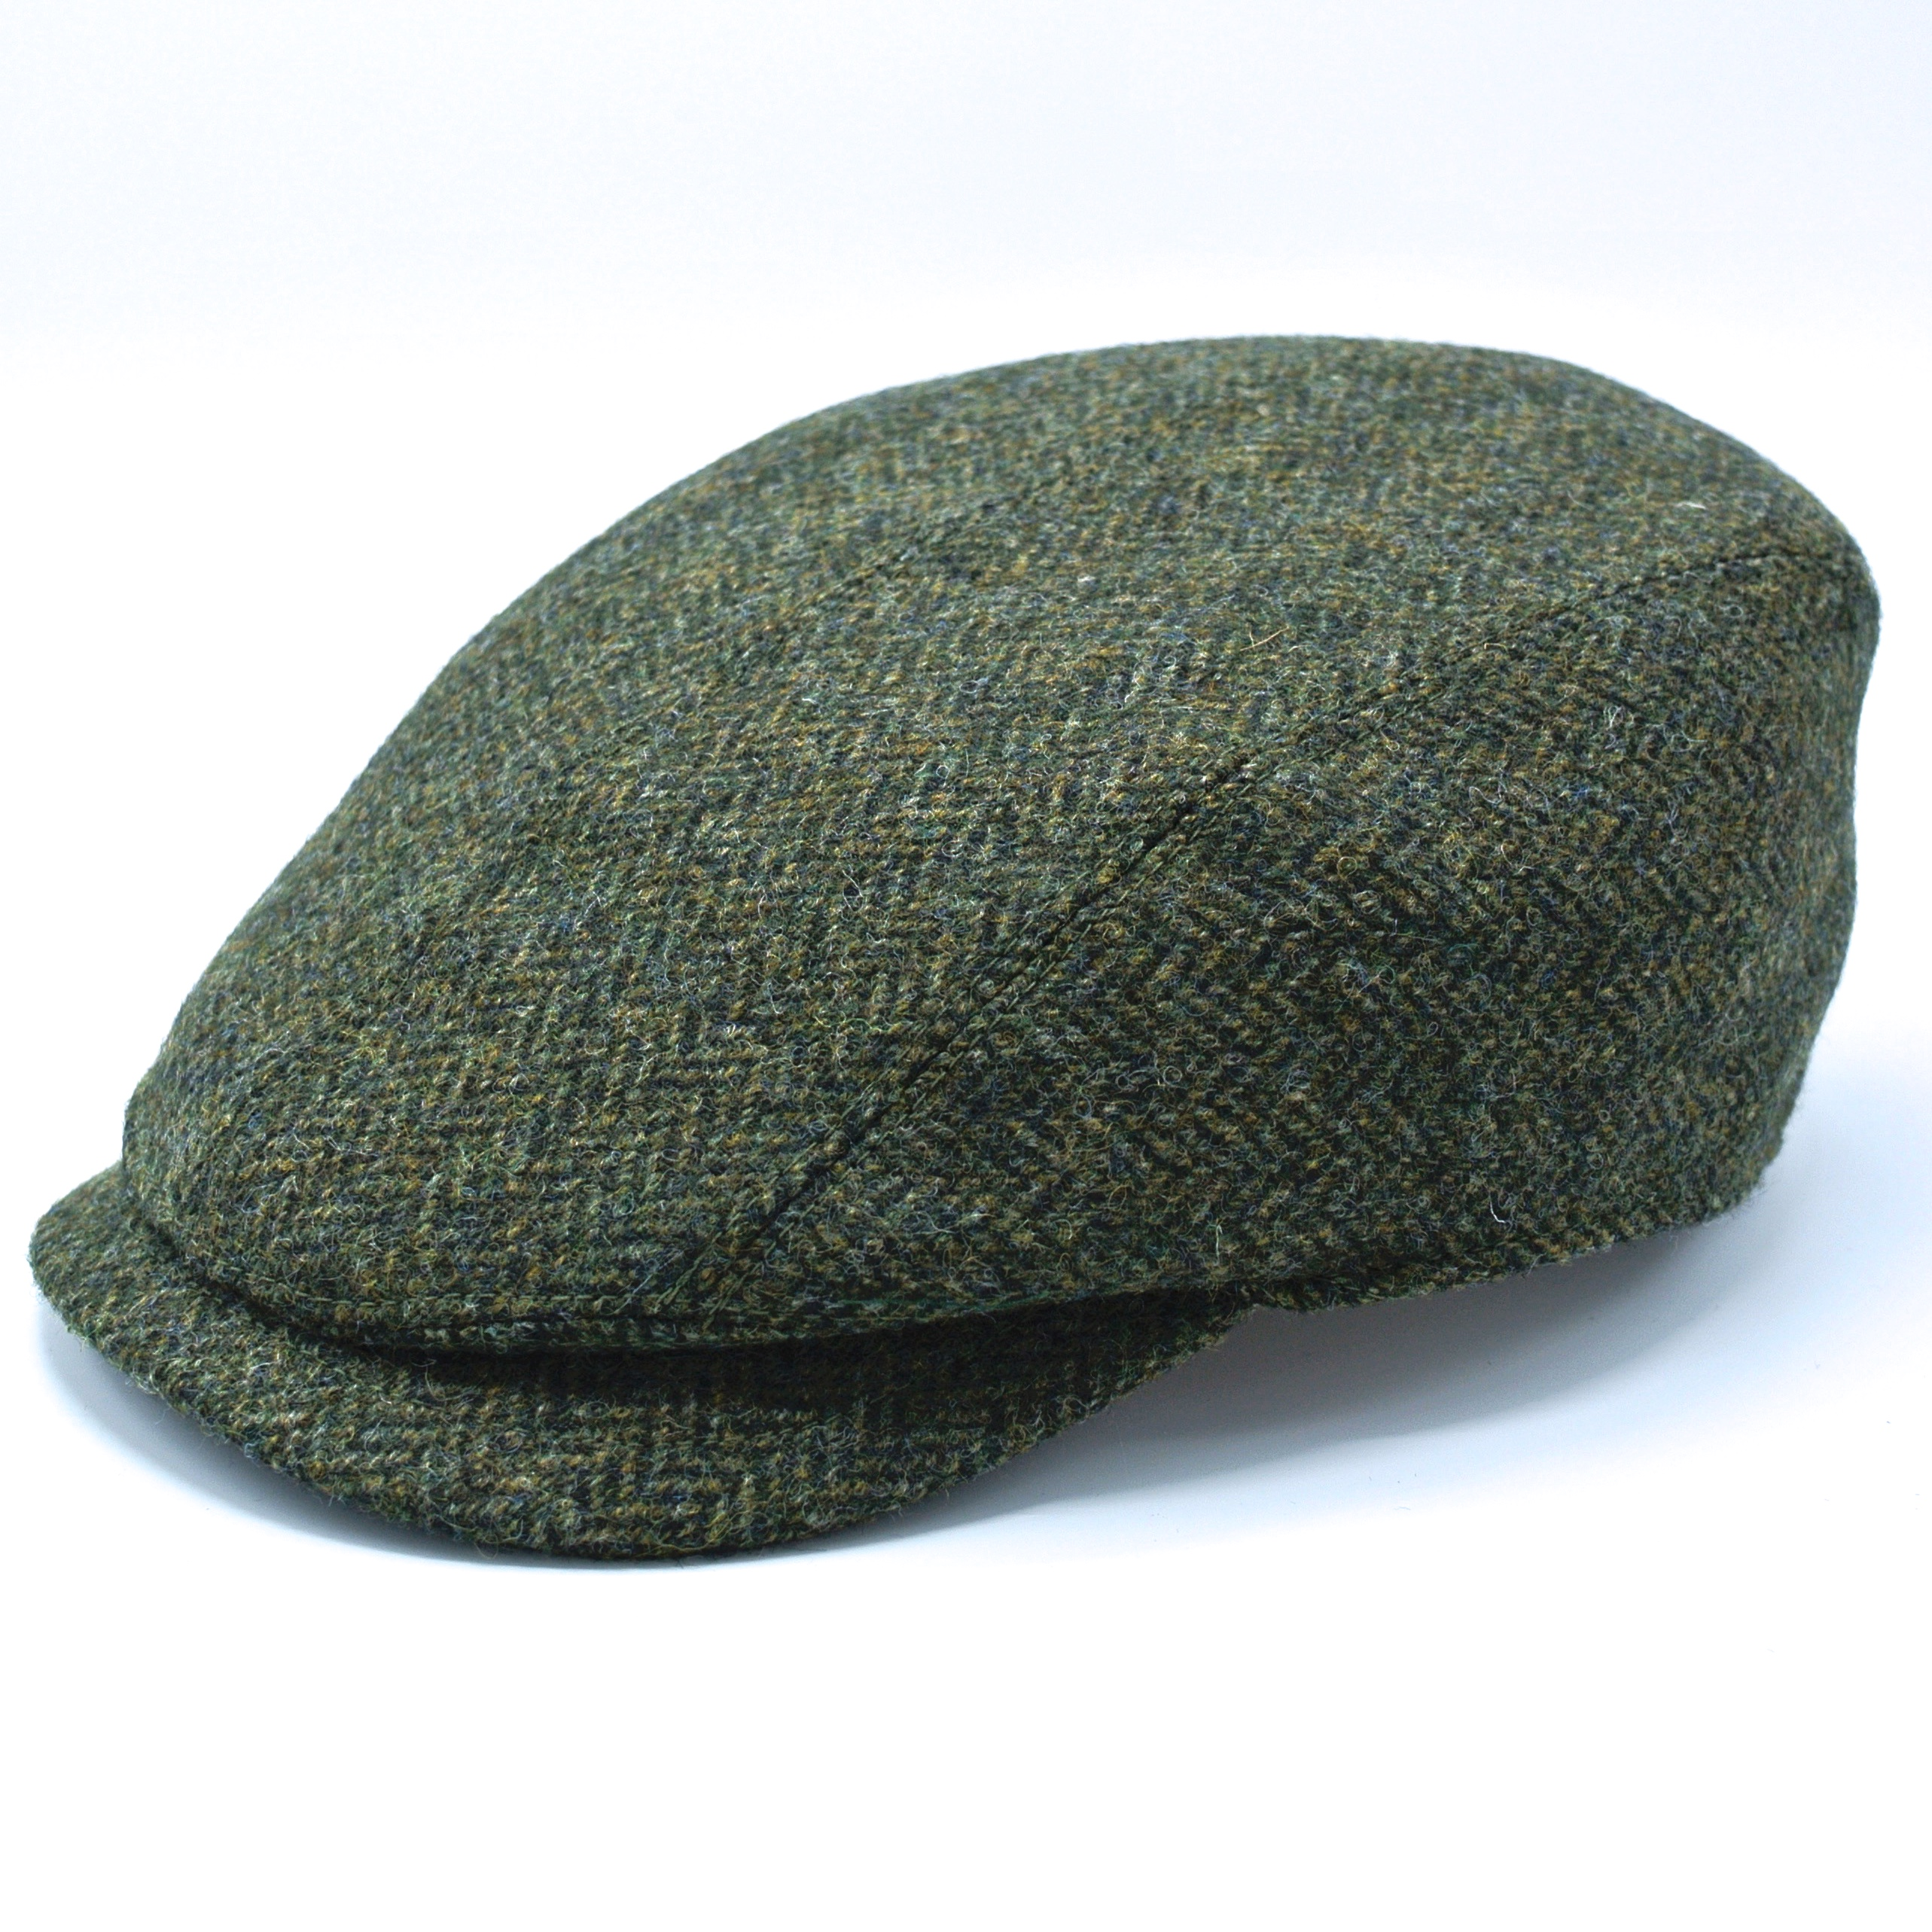 Lawrence and Foster Flat Cap Tweed Dark Green